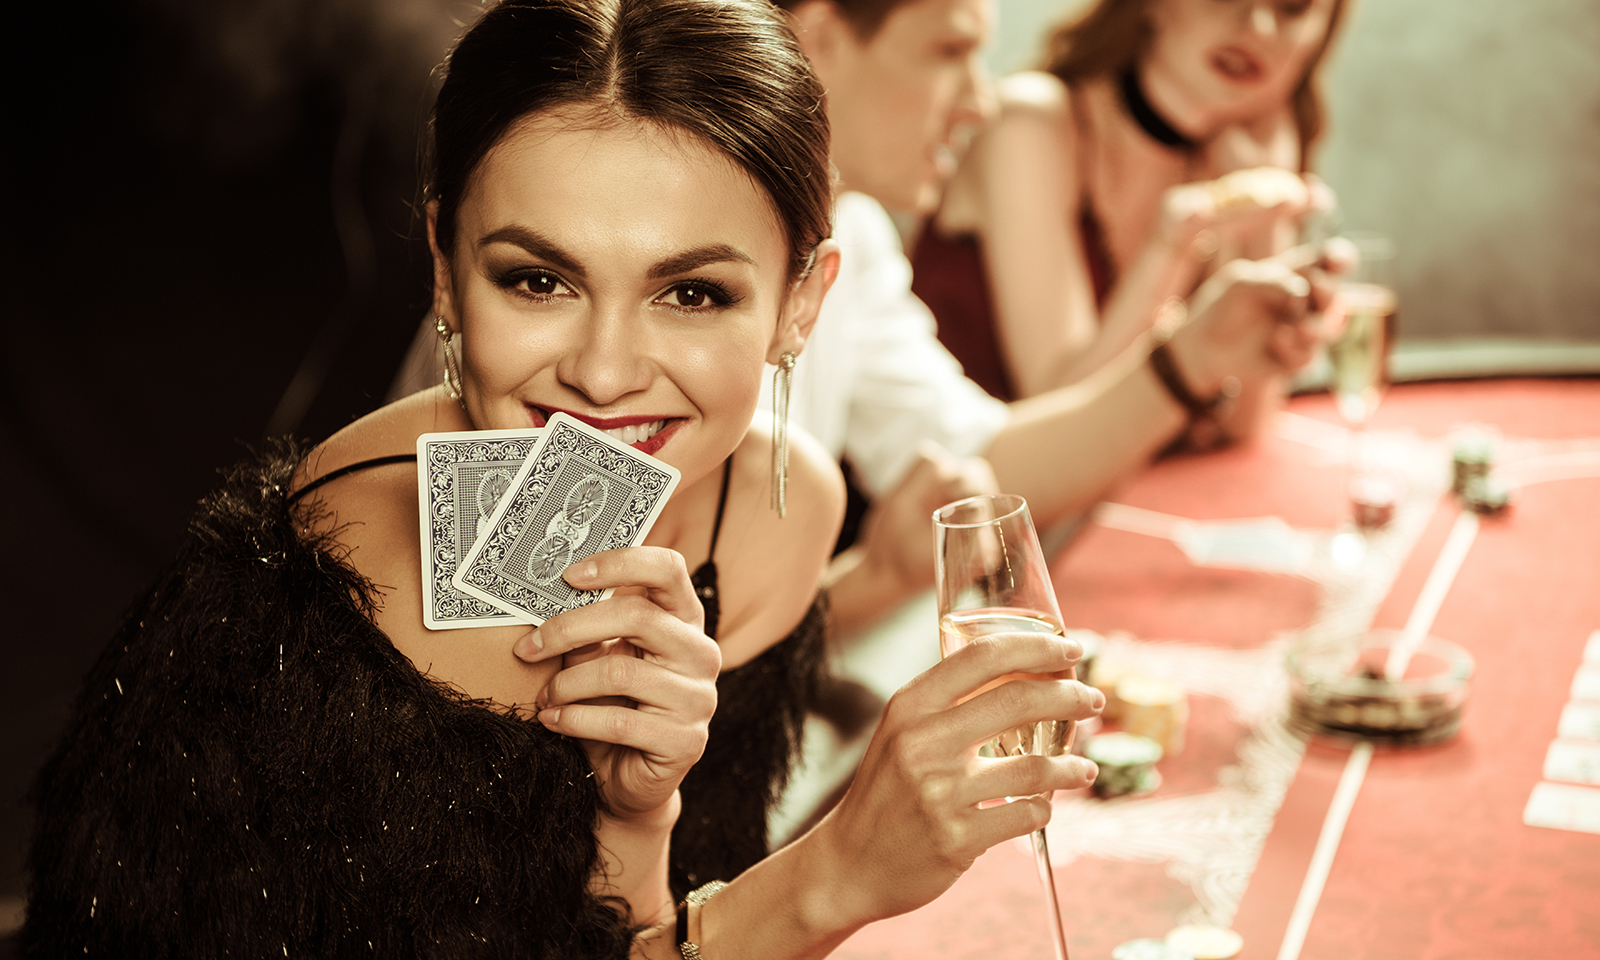 sports-betting-vs-casinos-which-odds-are-better-woman-with-cards-main-image